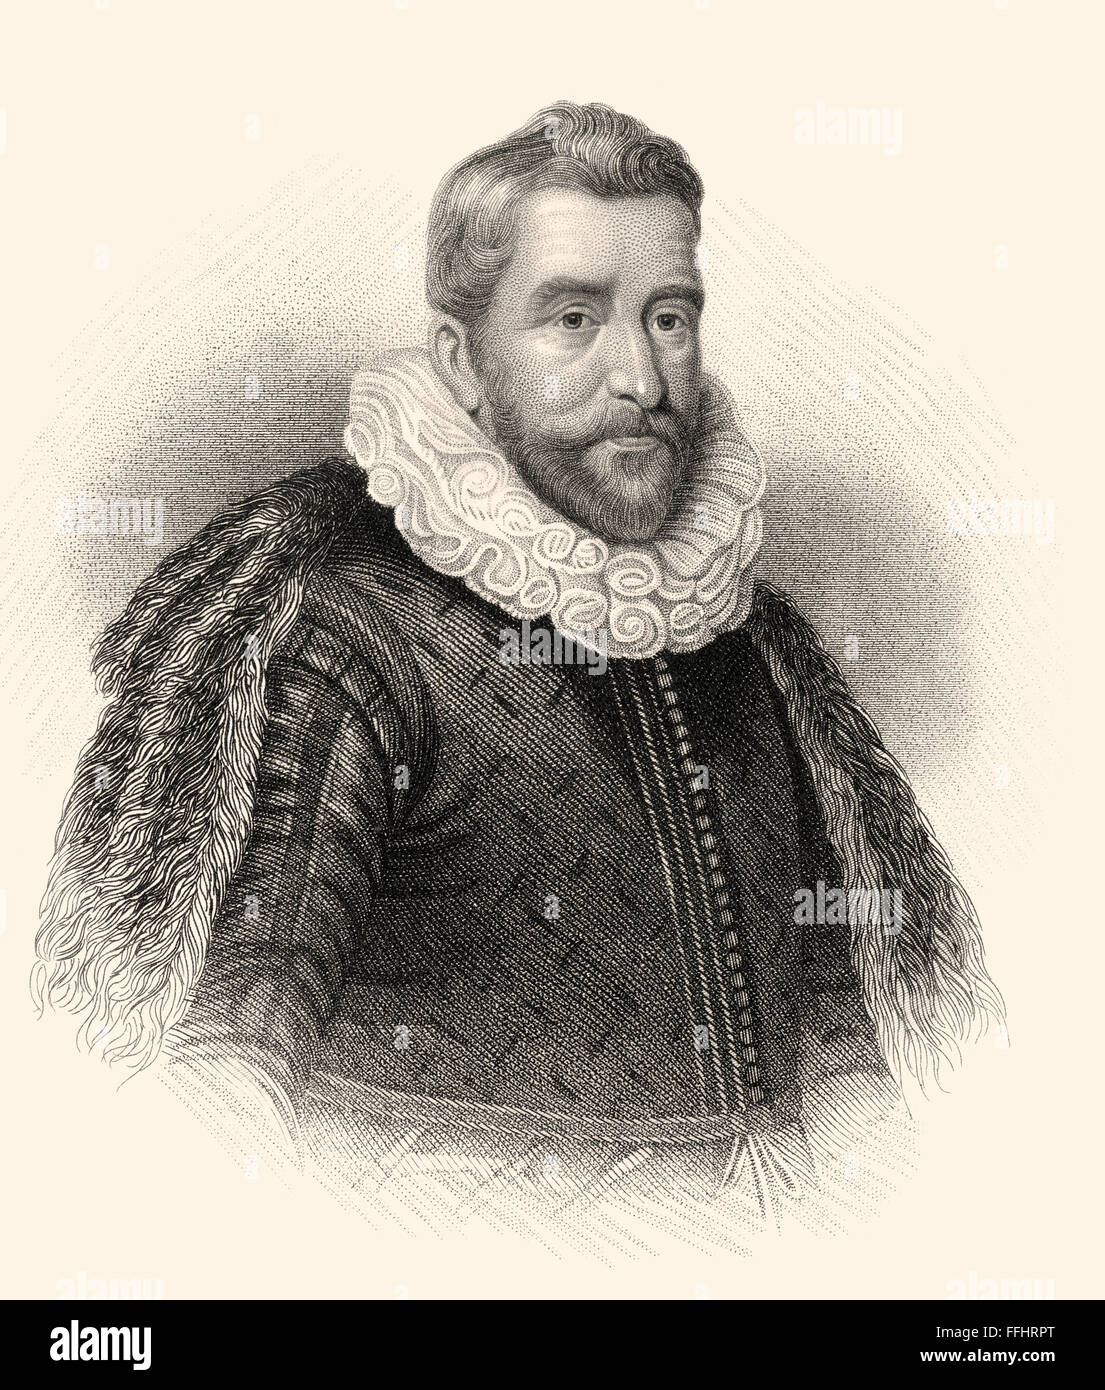 Sir Henry Wotton, 1568-1639, an English author, diplomat and politician - Stock Image